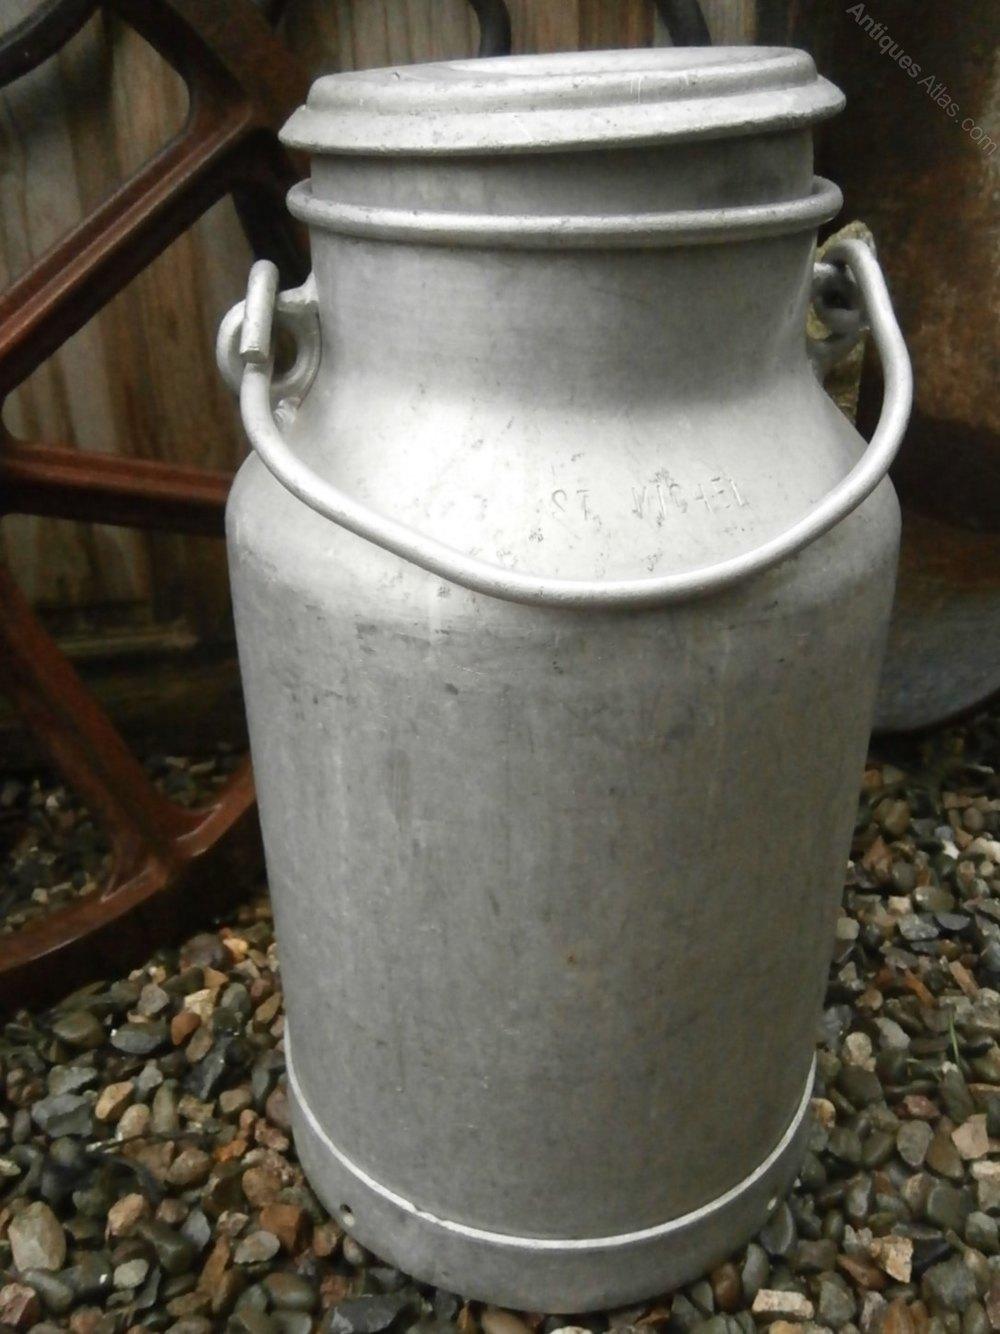 Decorative Milk Urn Original French Milk Churn Stamped St Michel